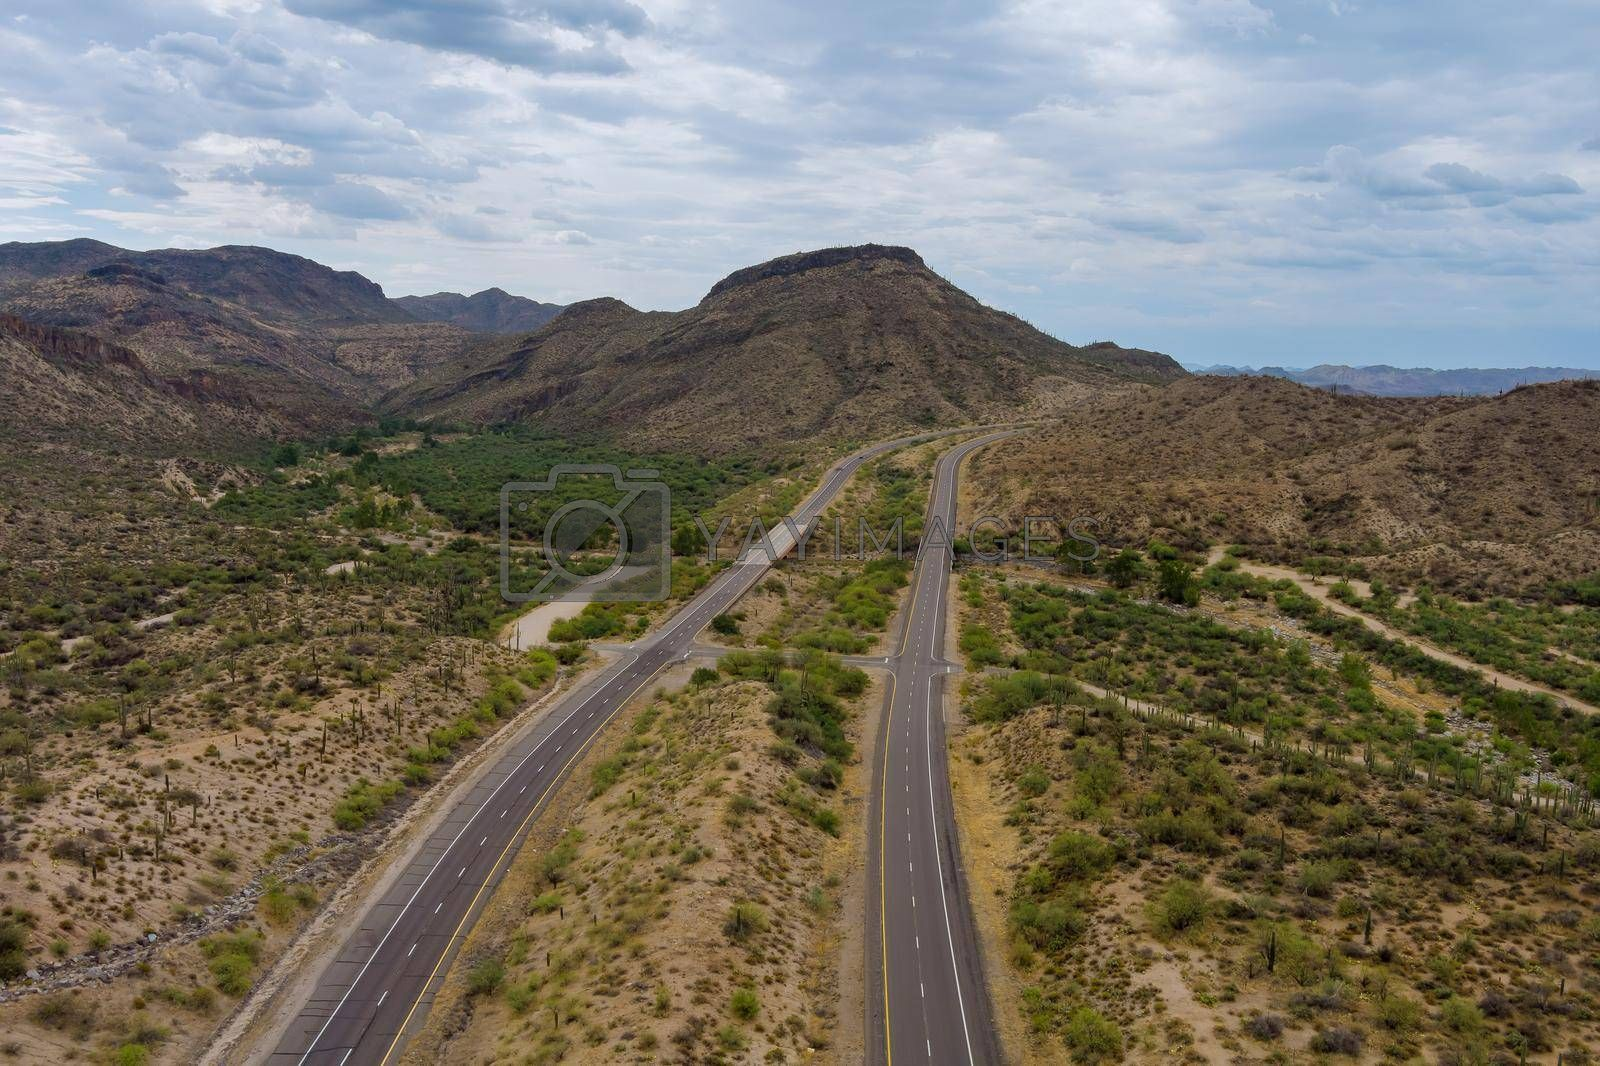 Royalty free image of Aerial view adventure traveling desert road of the asphalt highway across the arid desert Arizona mountains by ungvar